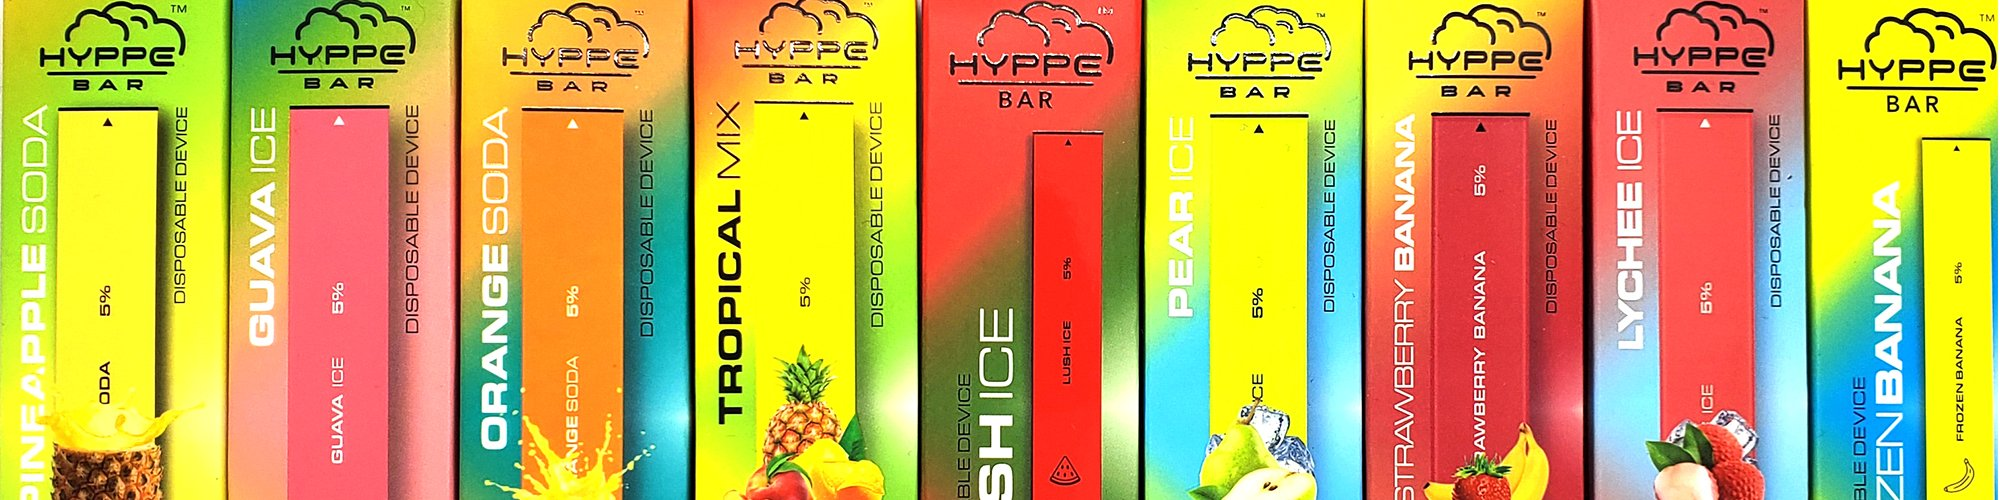 Hyppe Bar Disposable Vape Review